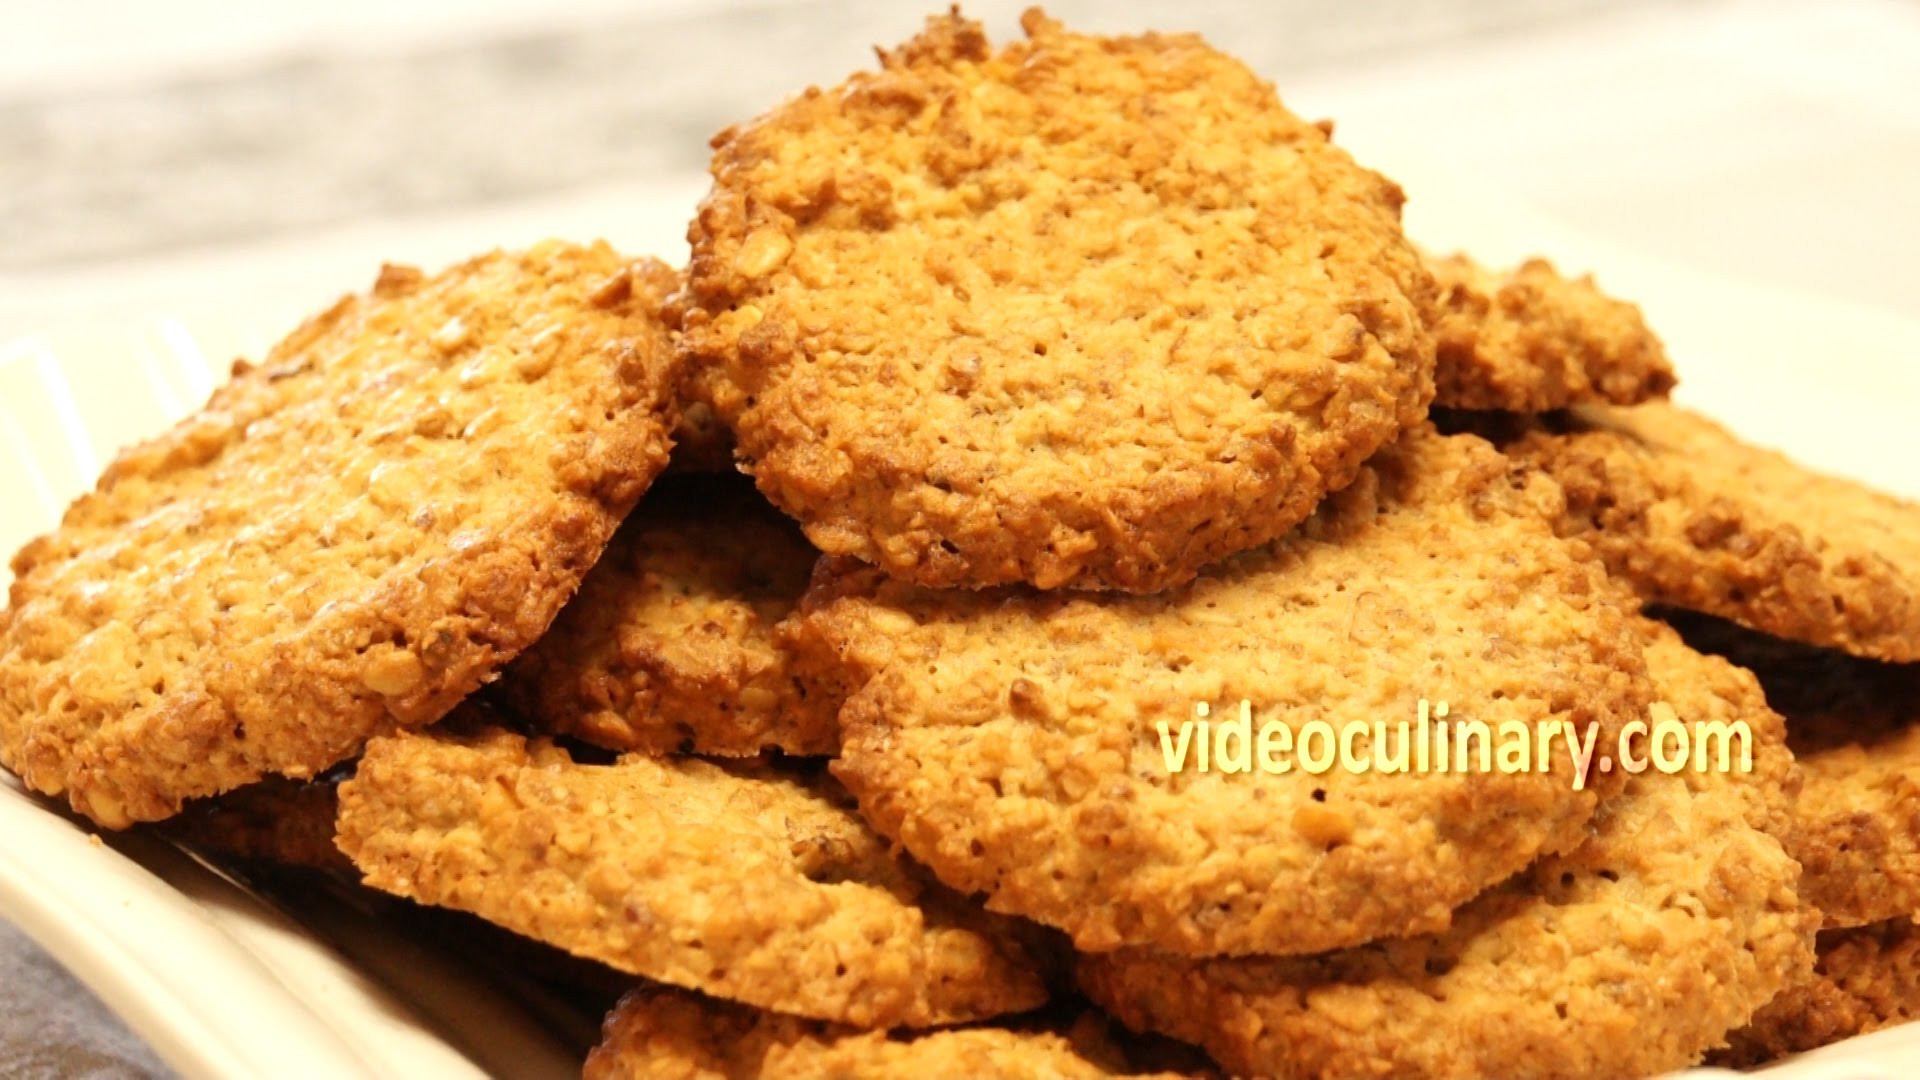 Gluten Free Oatmeal Cookies Recipe  Healthy Oatmeal Cookies Gluten Free Recipe Pop Diets